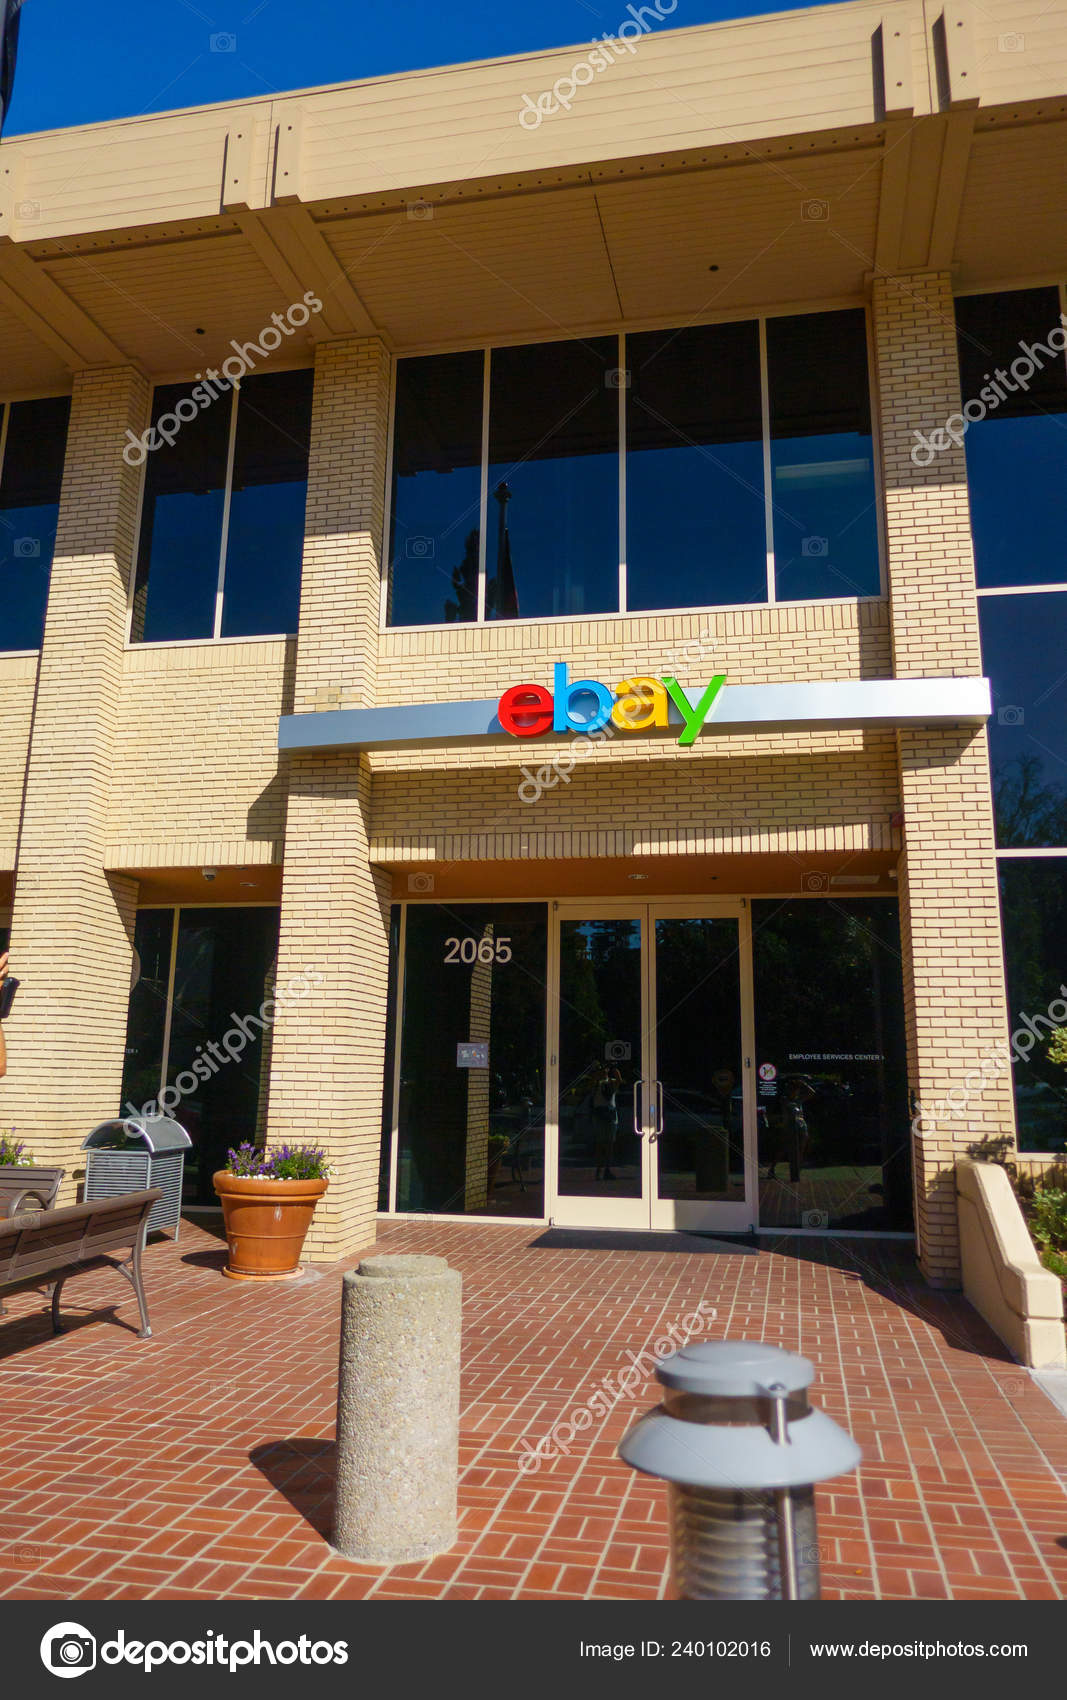 Ebay Company Headquarters In Silicone Valley Outdoors Stock Editorial Photo C Toxawww 240102016